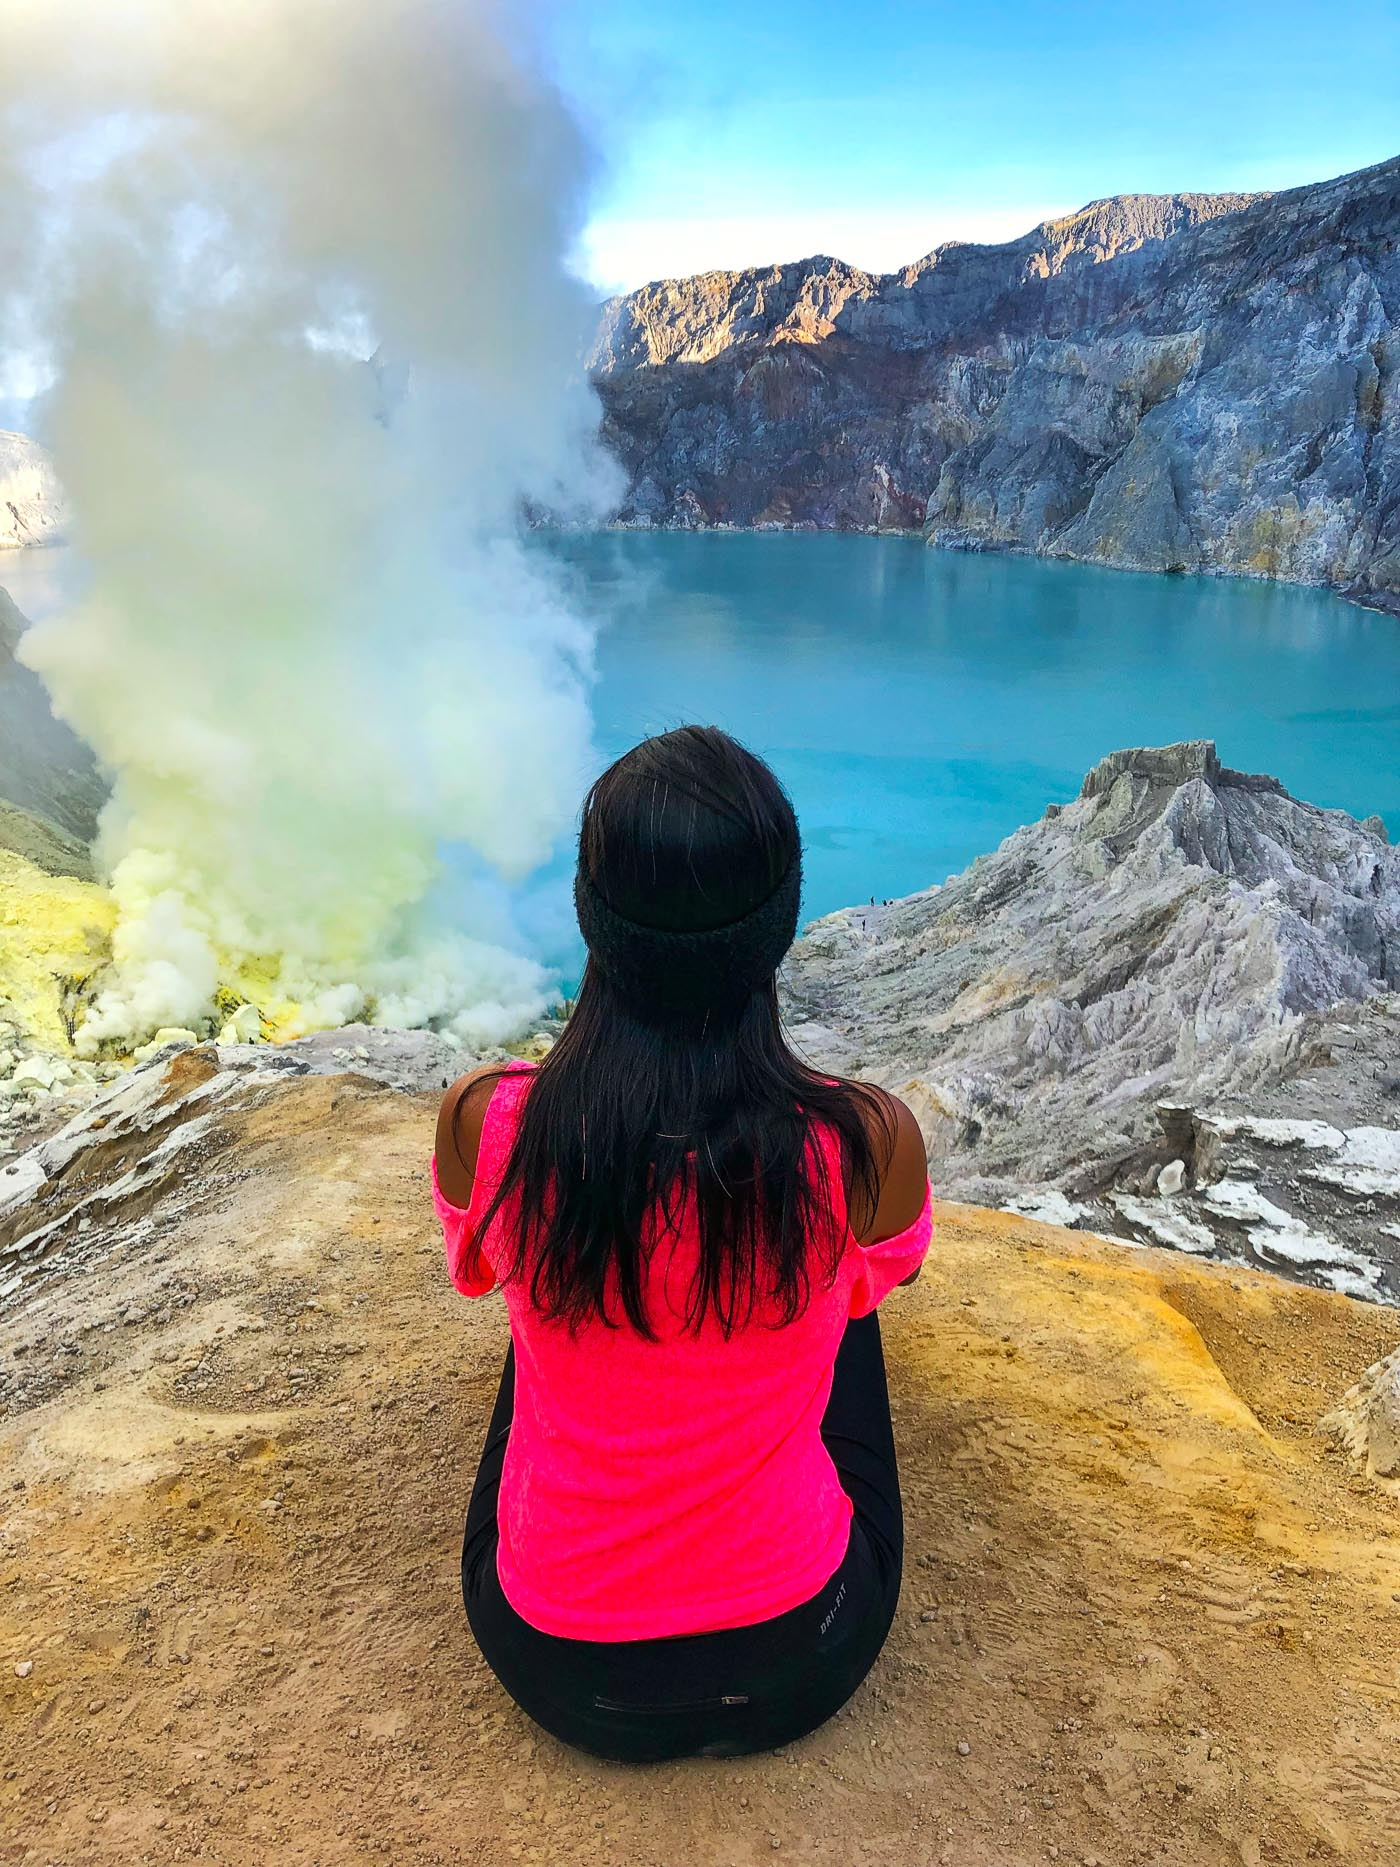 Mount_Bromo_Java_Indonesia_Active_Volcano_Hiking_Trekking_Solo_Travel_Blogger_The_Sassy_Pilgrim_Travel_Tips_Guide_Kawah_Ijen_Sulphuric_Lakes_Sunrise